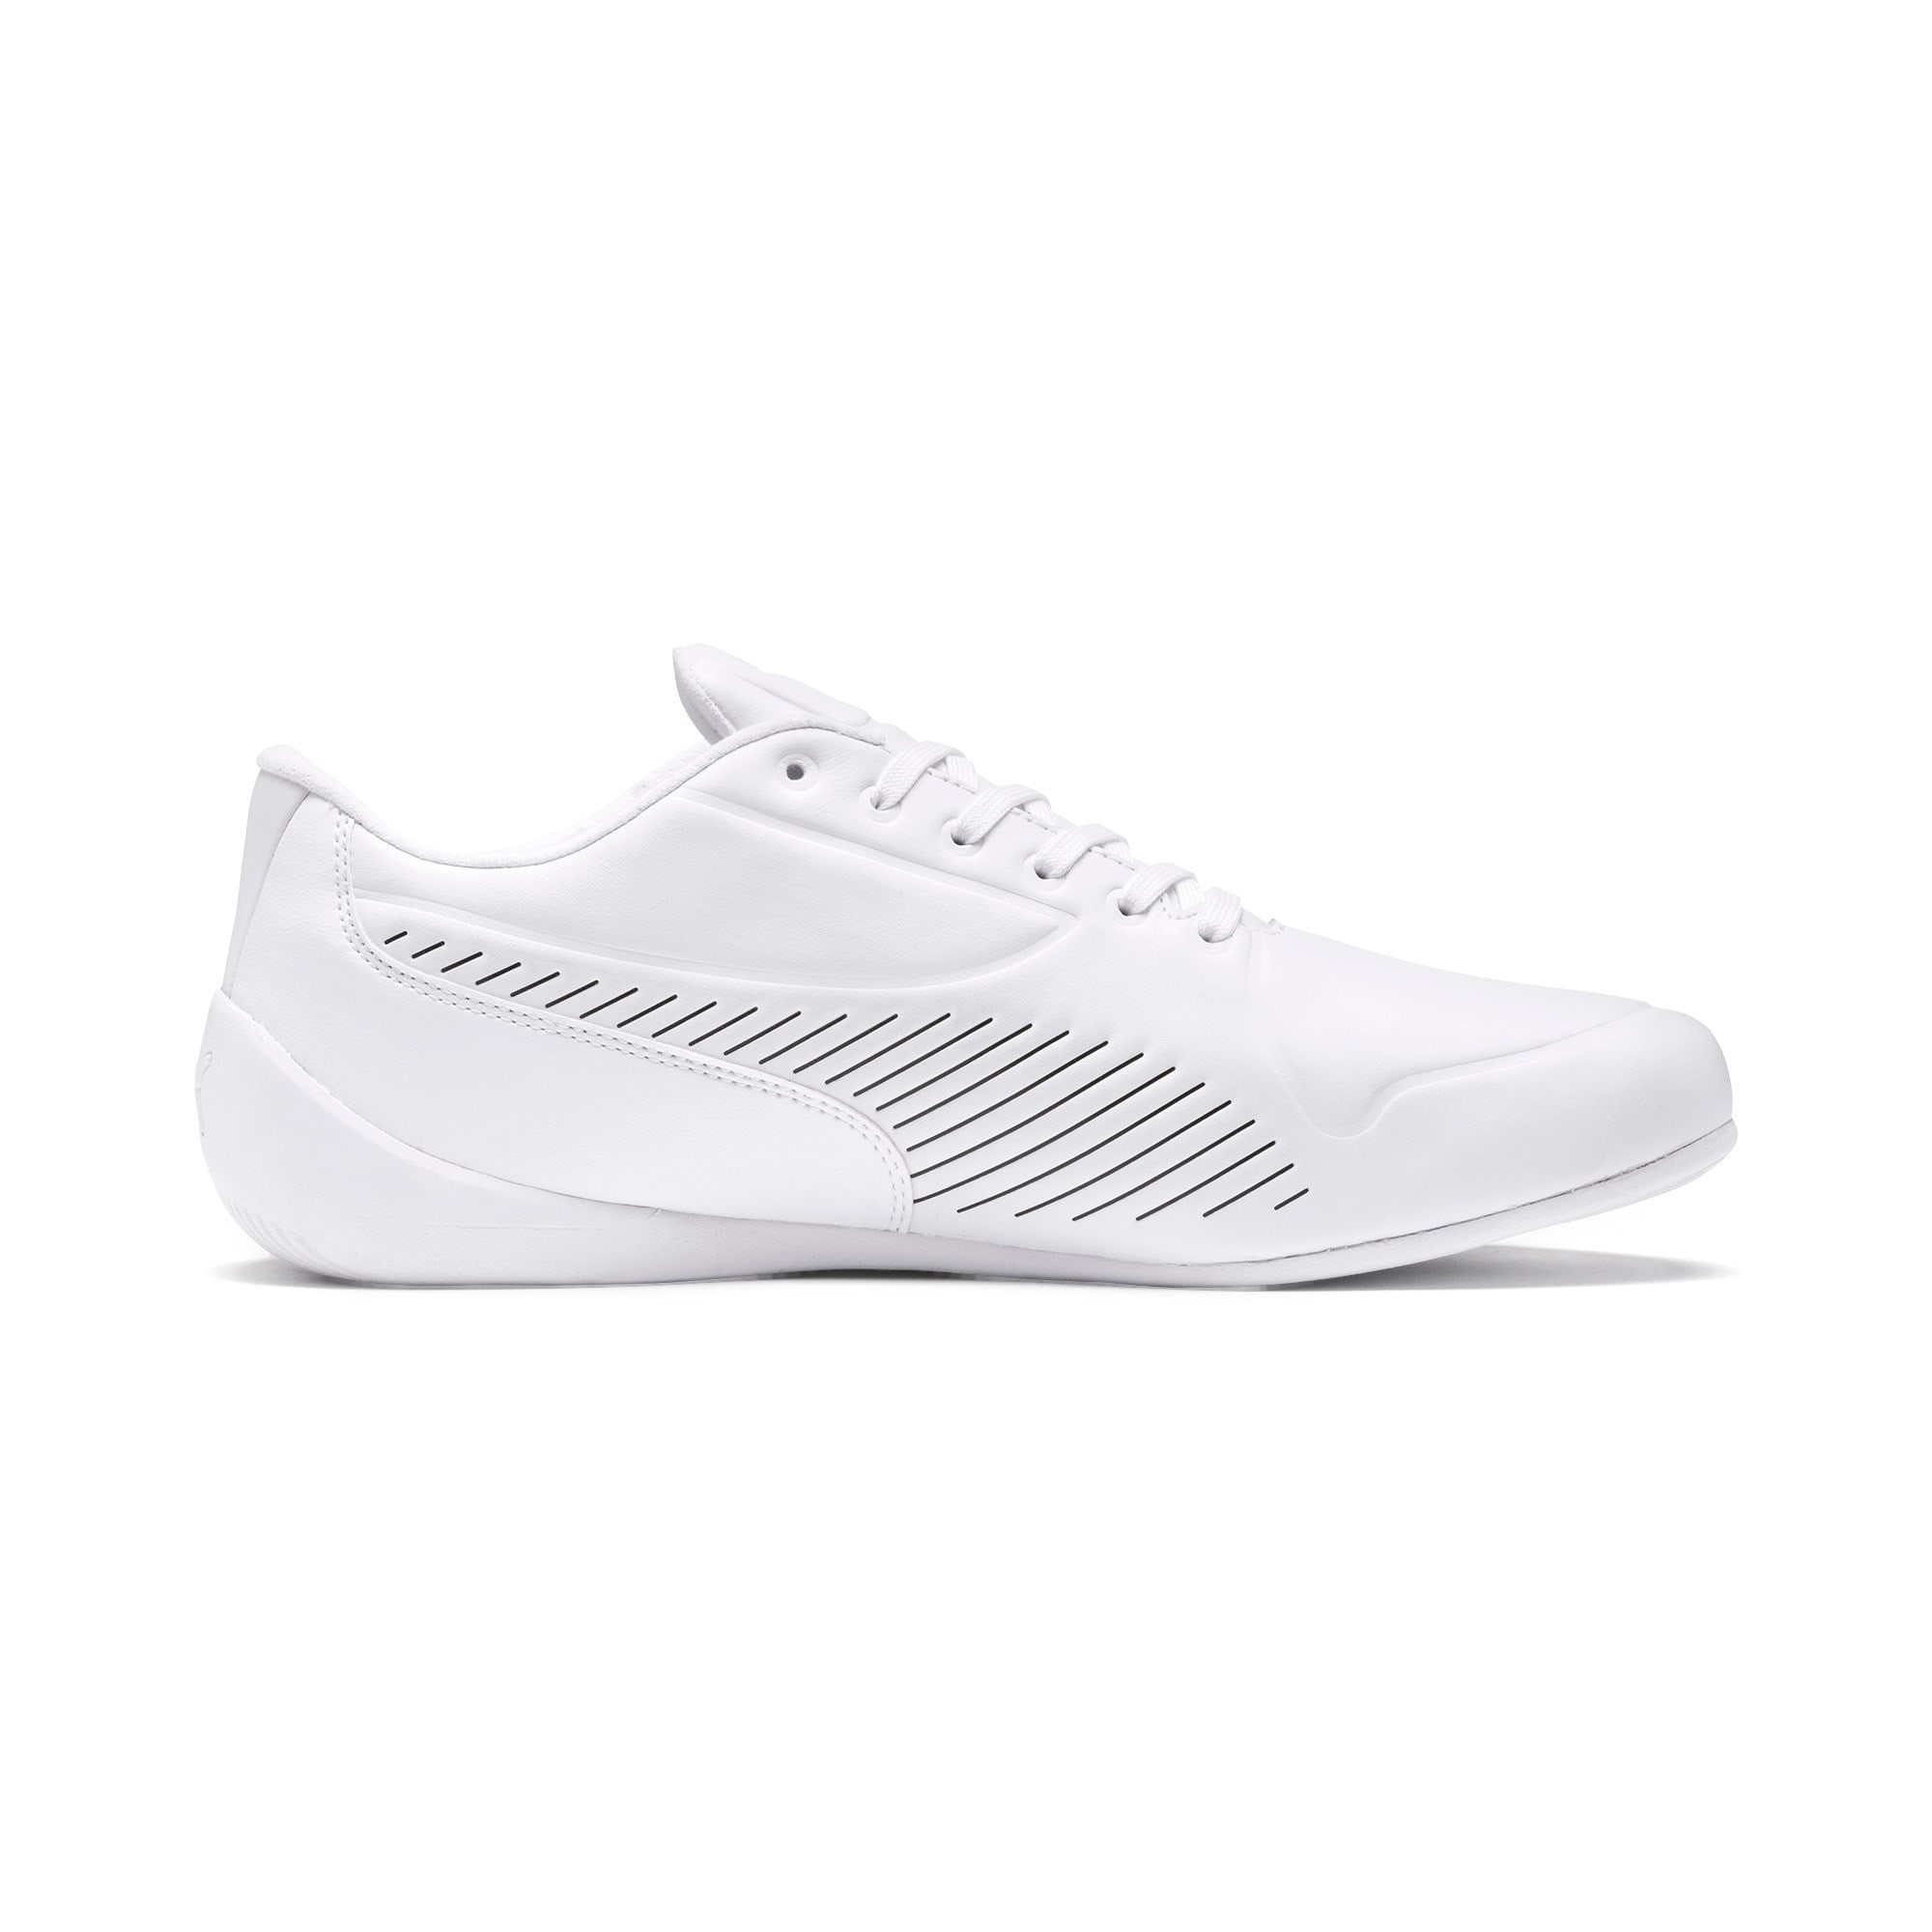 Thumbnail 6 of Scuderia Ferrari Drift Cat 7S Ultra LS Men's Shoes, Puma White-Pastel Parchment, medium